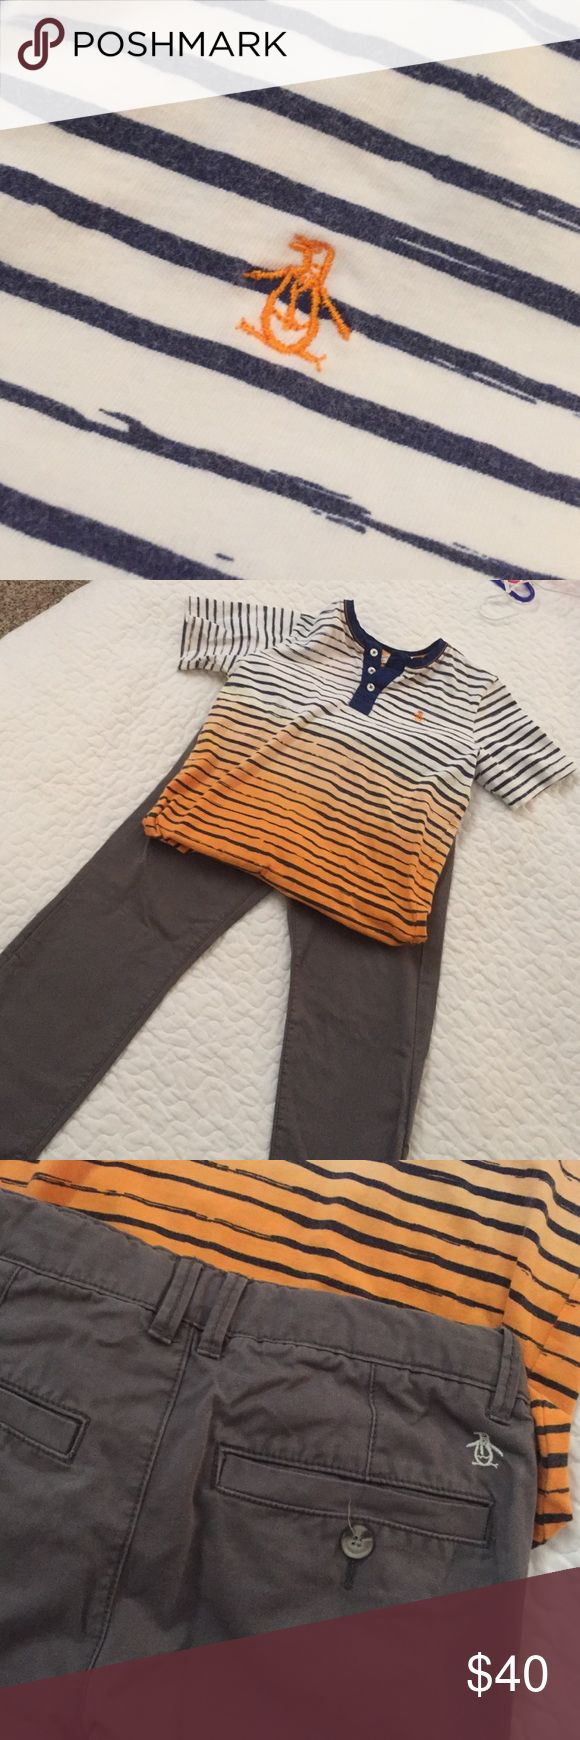 Boys Penguin Brand Outfit Gray Penguin brand pants with Orange and Navy too.  Pants size 8 shirt size small. Penguin Matching Sets